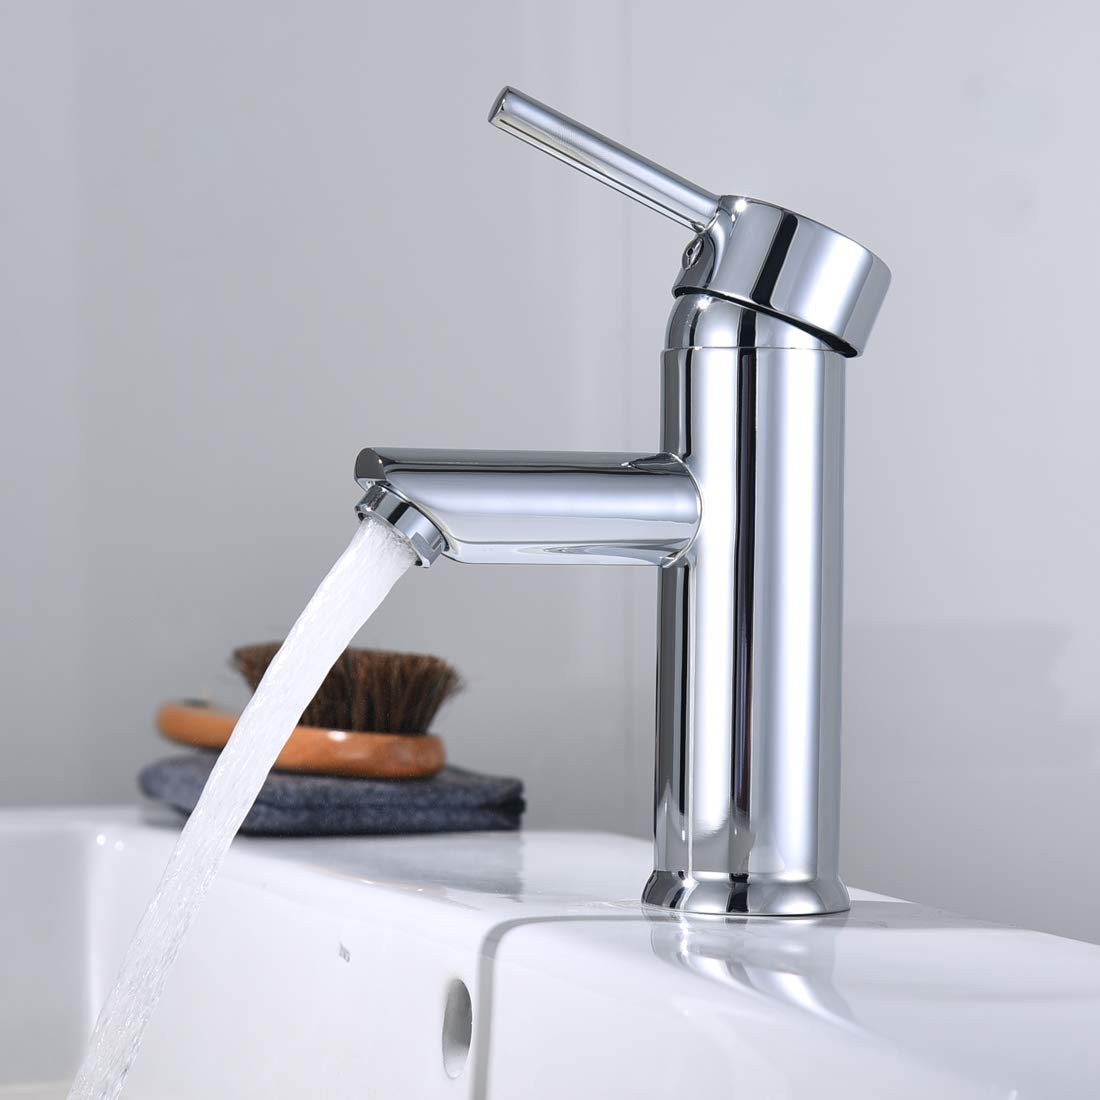 Crush Washbasin Faucet Solid Brass Hot and Cold Mixer Taps Finished Chrome Cloakroom Washroom Single Lever Basin Mixer Tap Lavatory Bathroom Vanity Sink Faucet